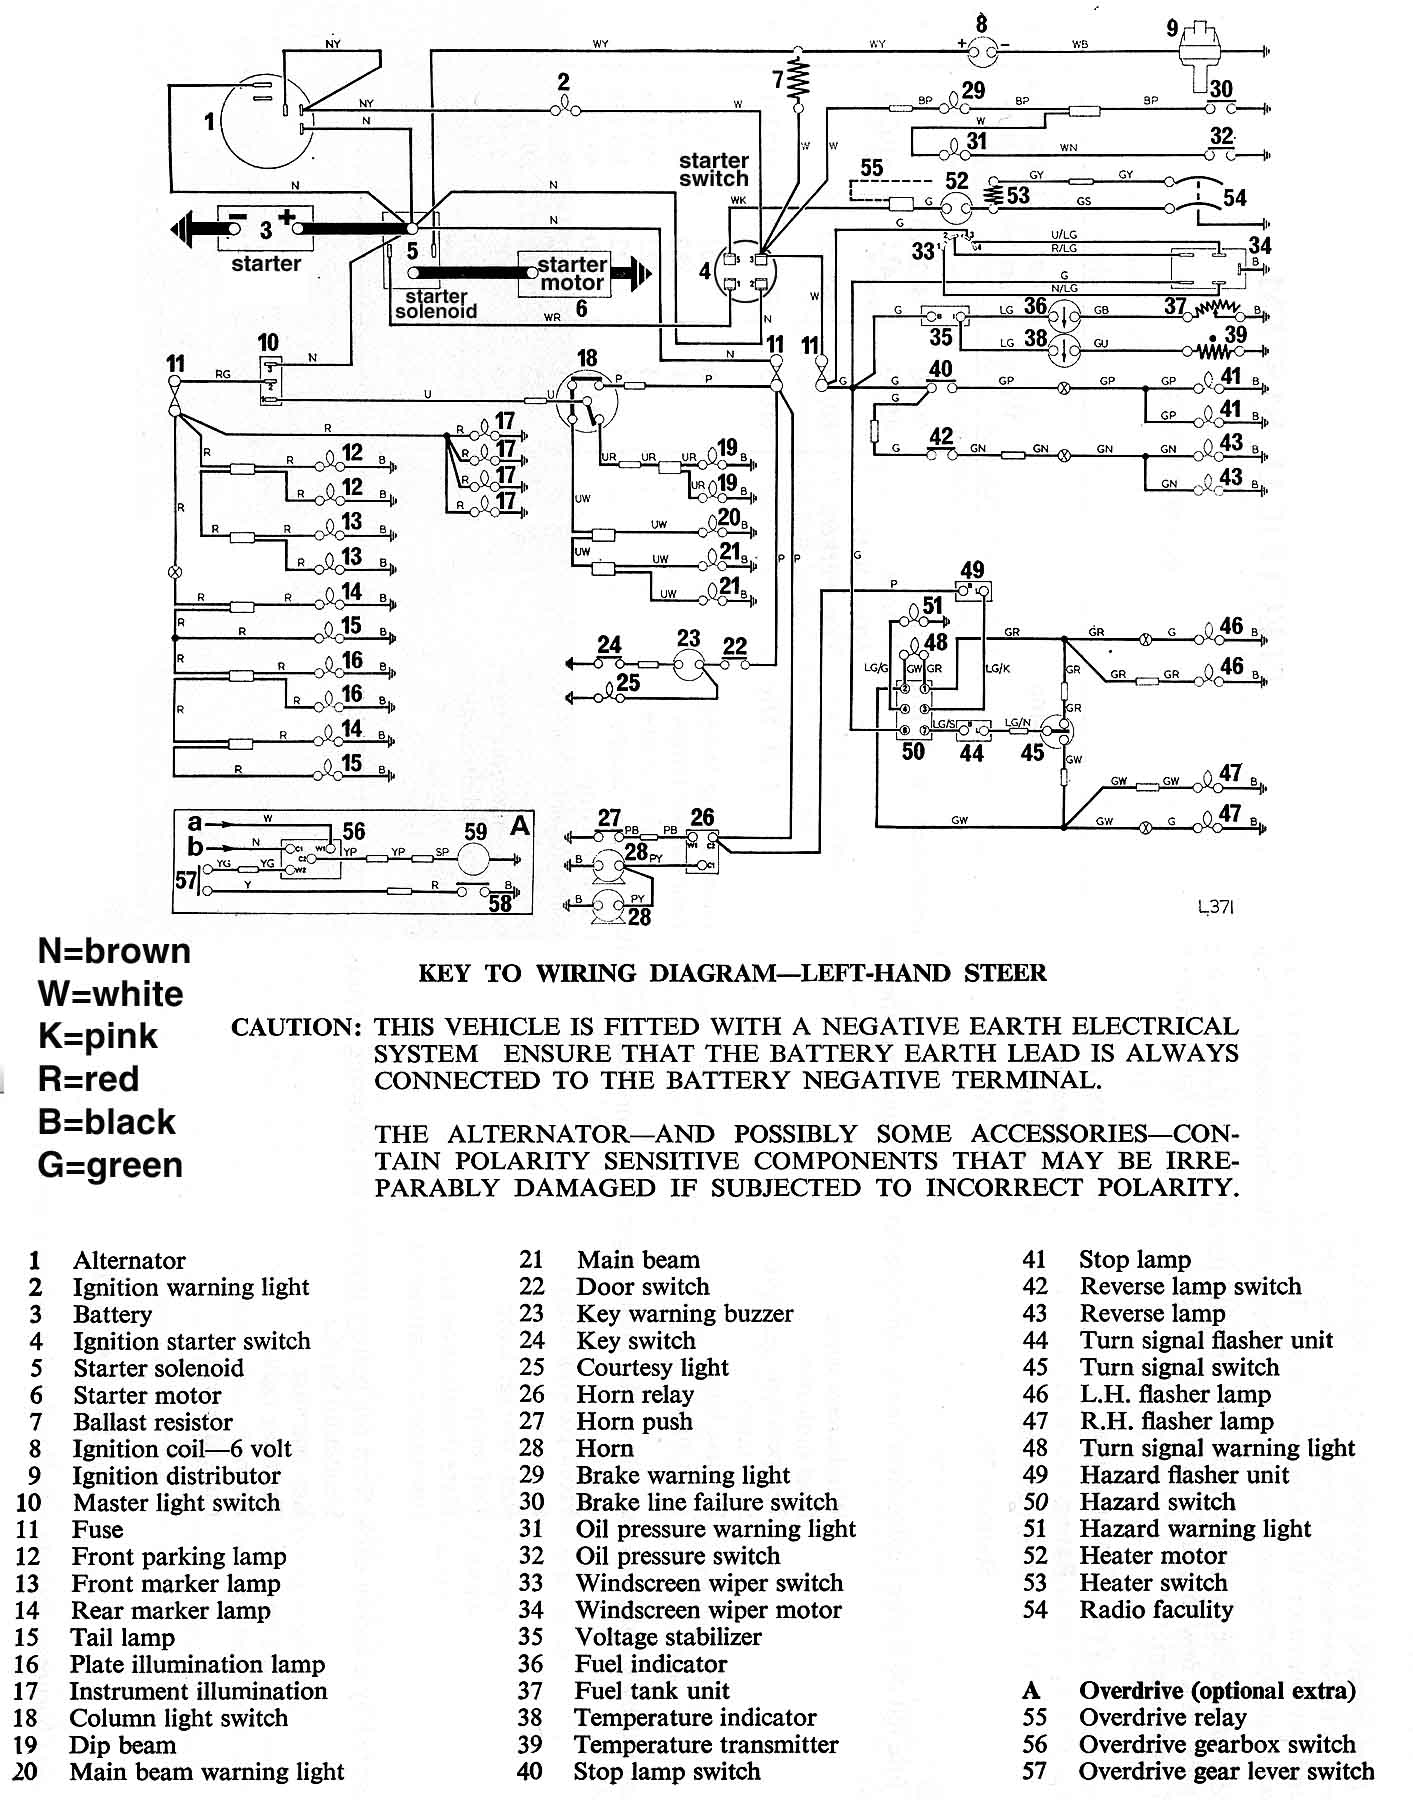 MKIVwire wiring schematics and diagrams triumph spitfire, gt6, herald 1980 triumph spitfire wiring diagram at edmiracle.co